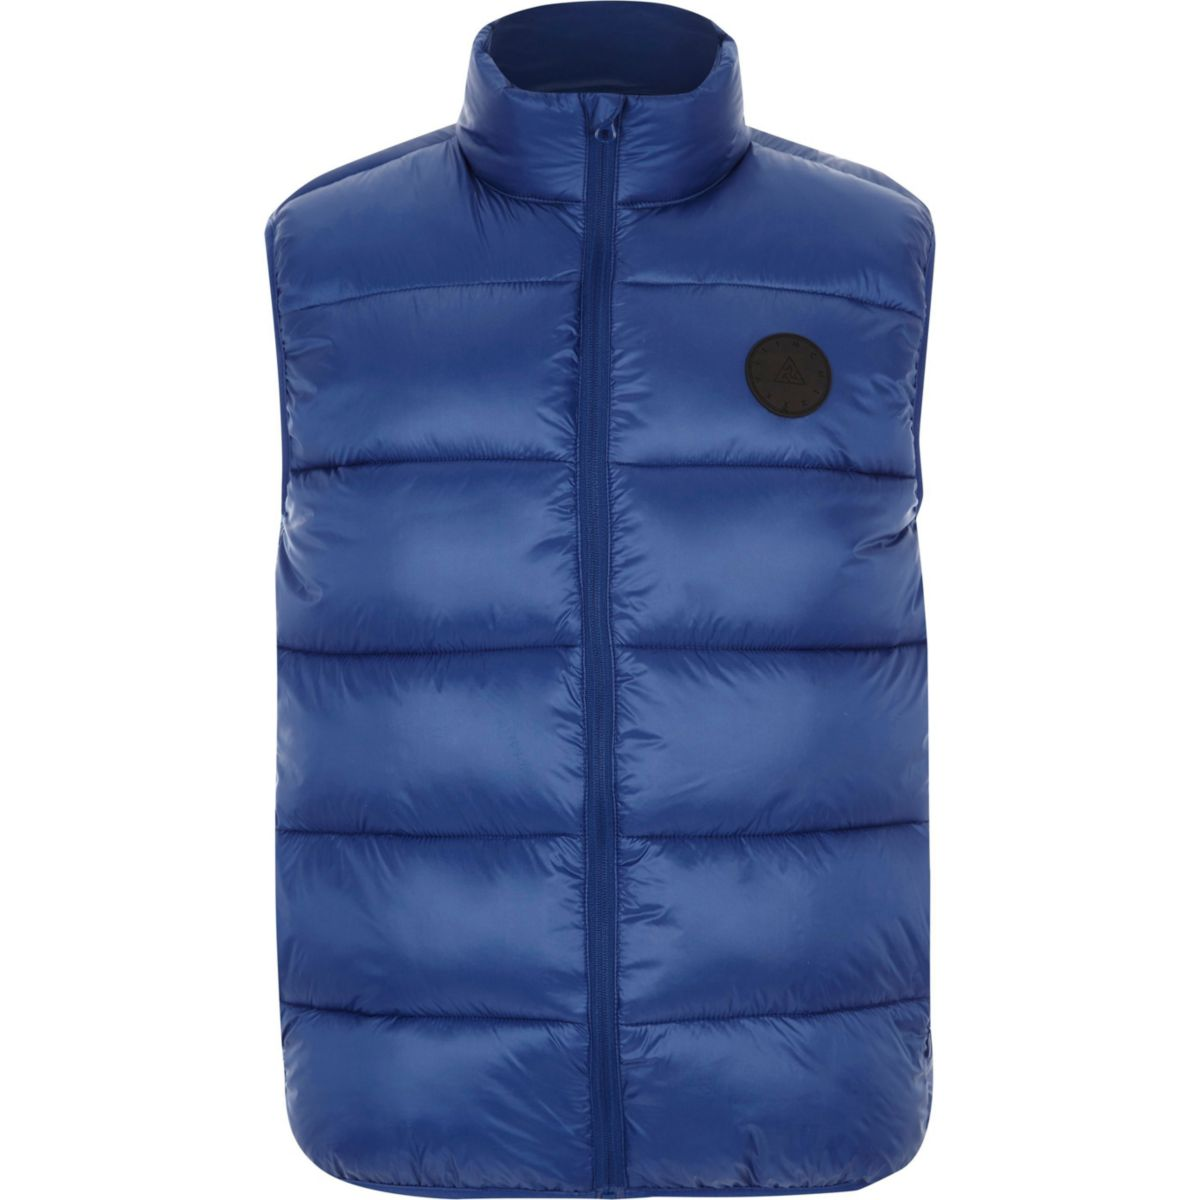 Big and Tall blue puffer gilet